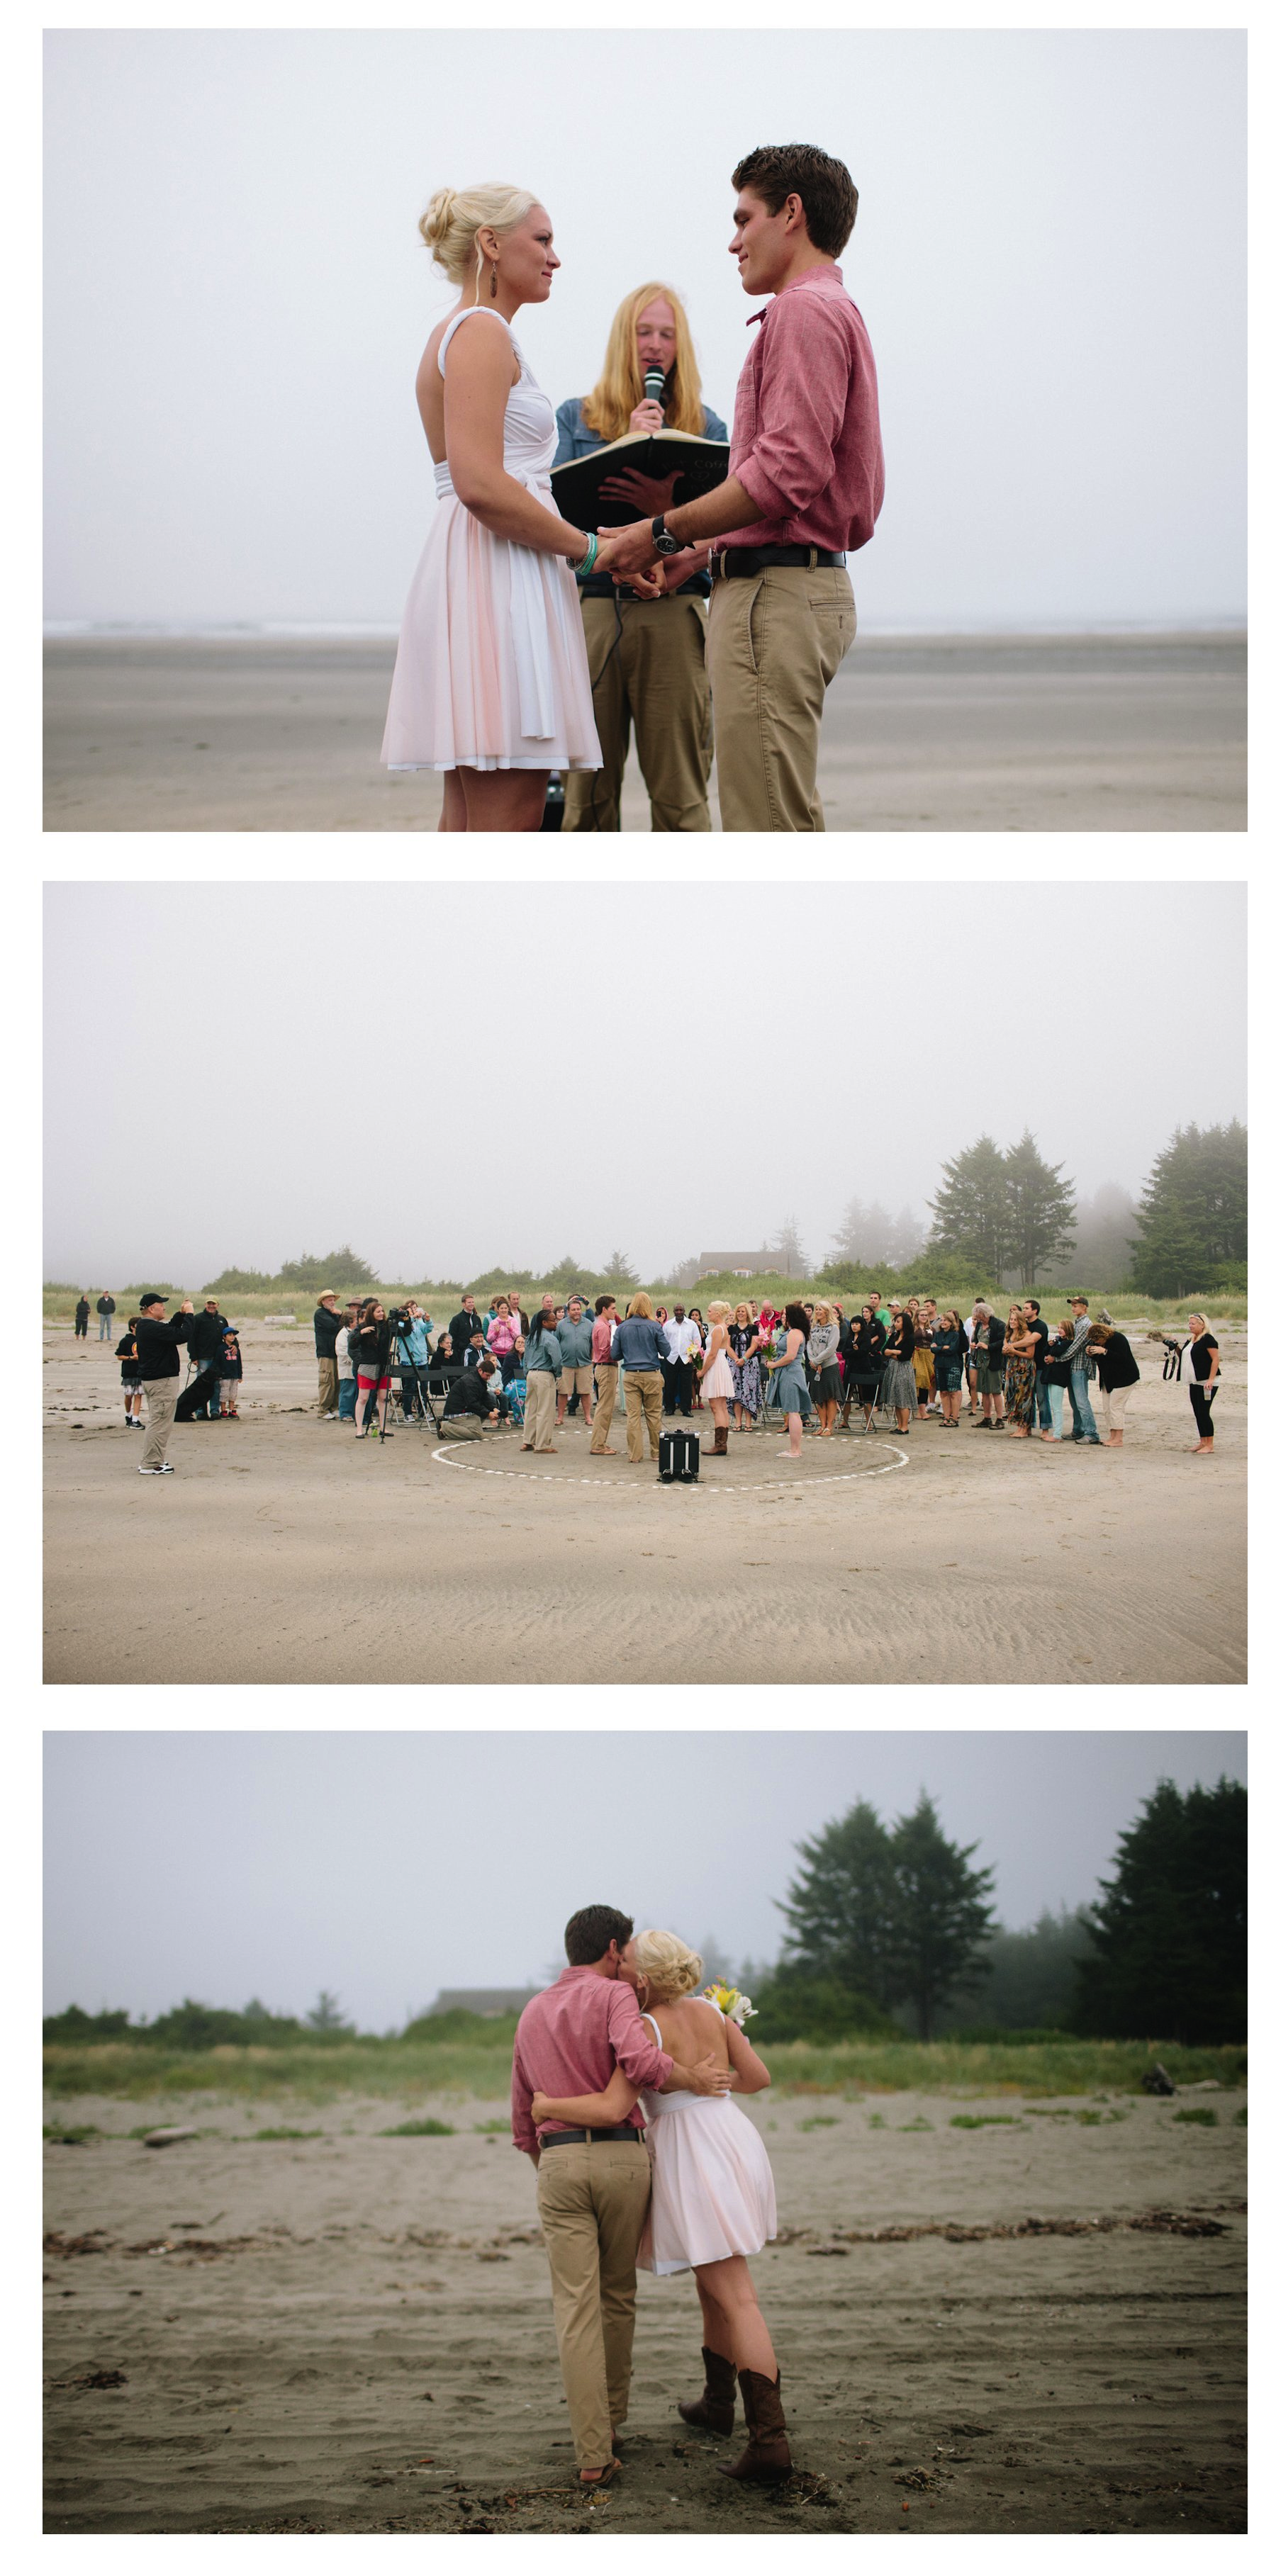 Coffey-wood-beach-real-wedding-linhbergh-photography-bride-groom-ceremony.original